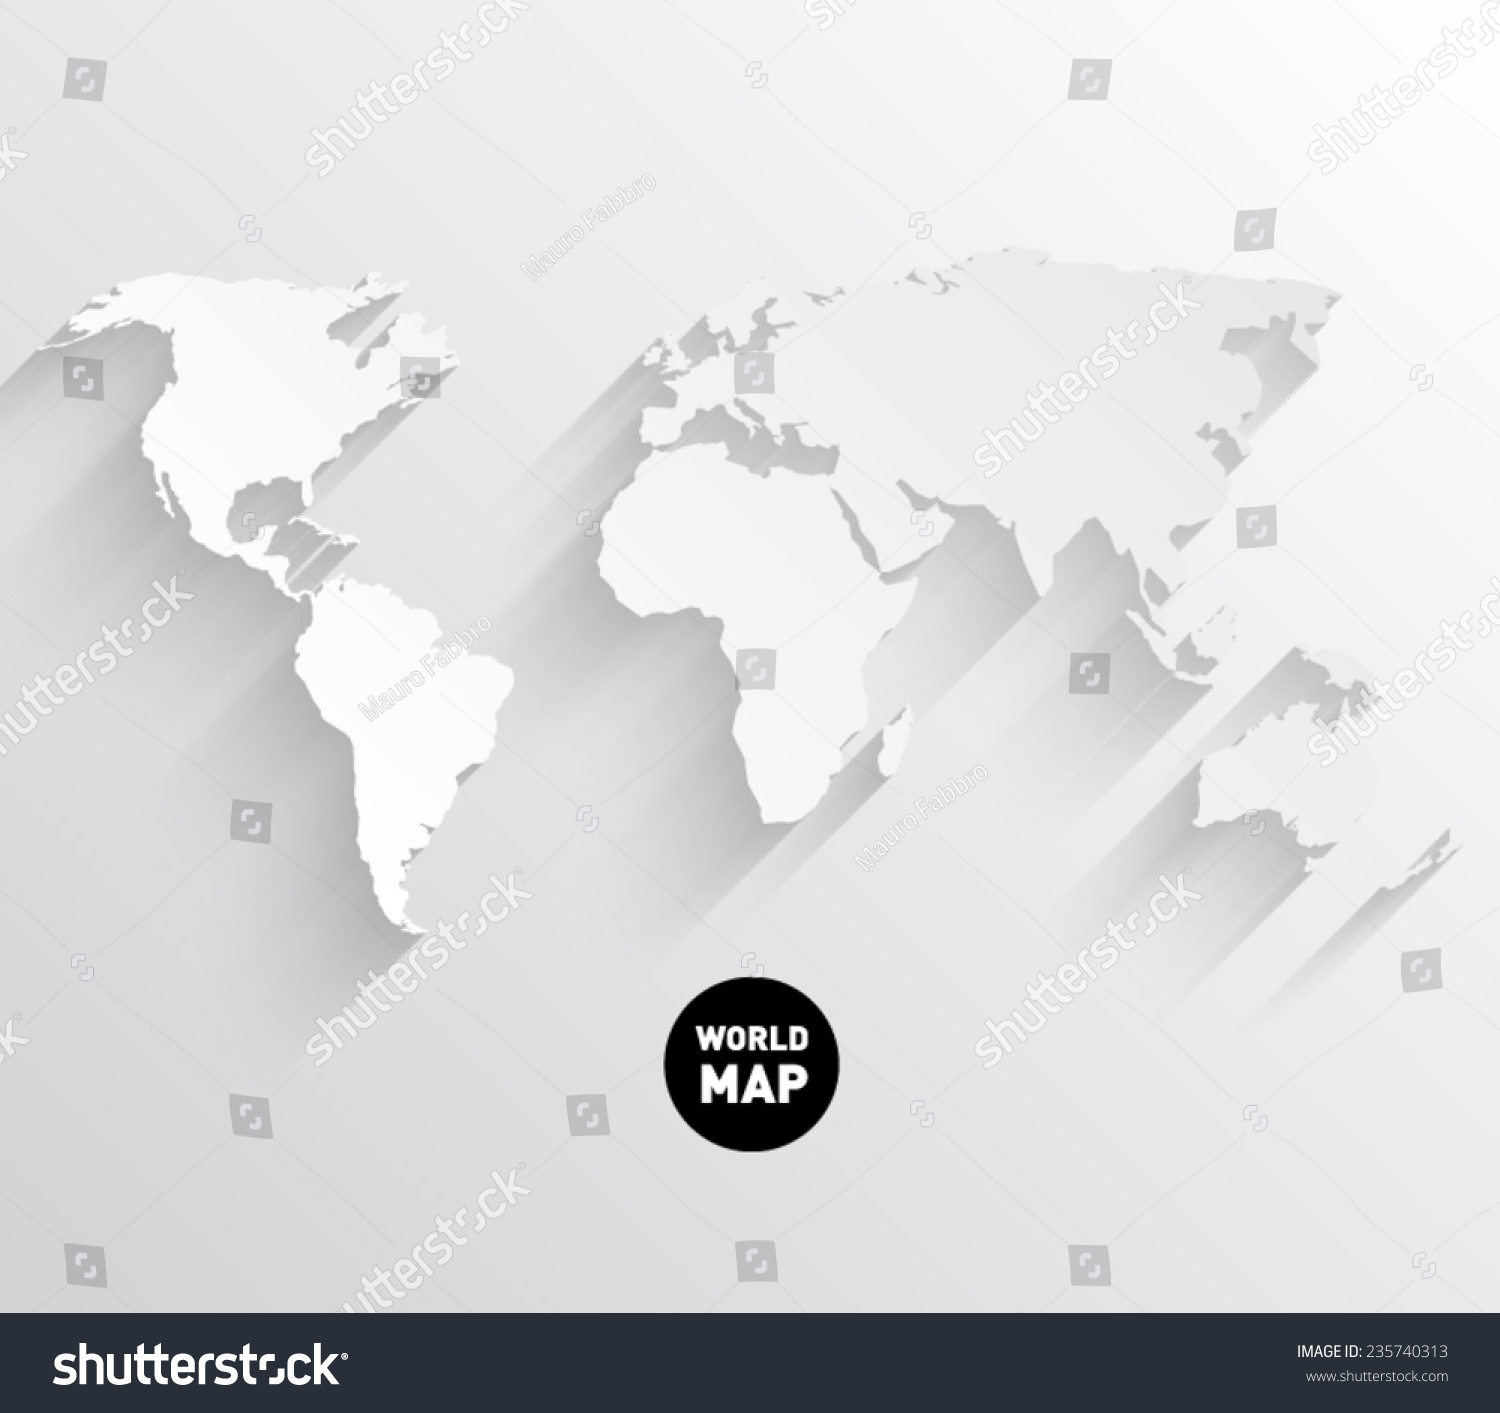 Royalty free vector world map background with long 235740313 vector world map background with long shadow and flat design style clean and modern gumiabroncs Image collections